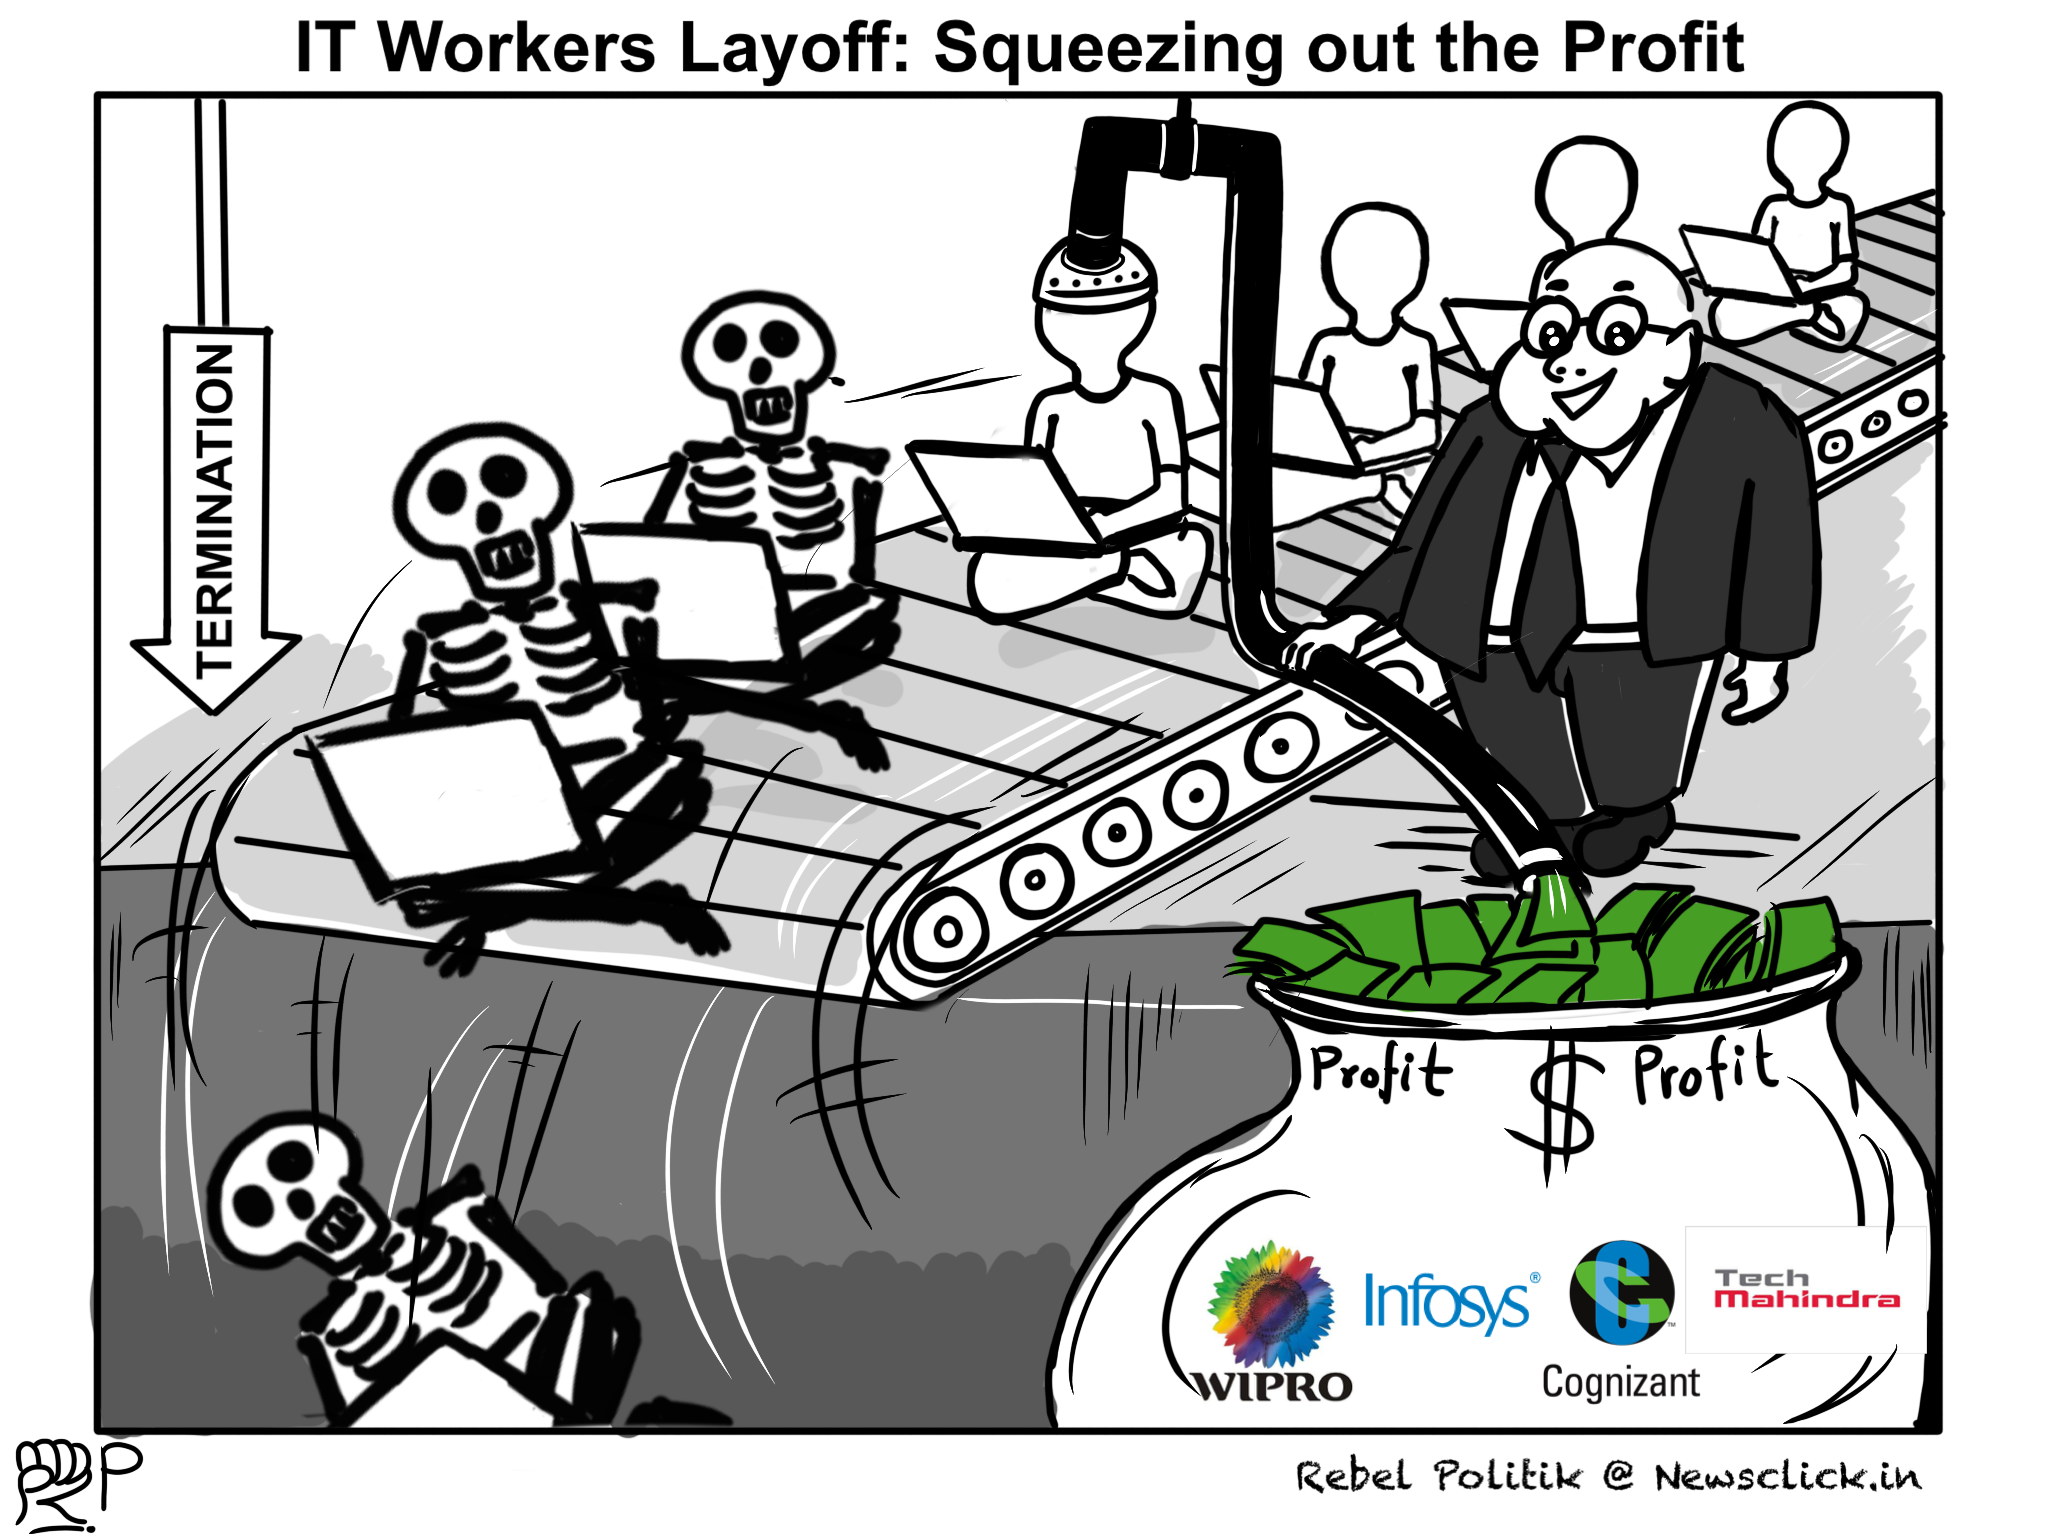 IT Workers Layoff: Squeezing Out the Profit | NewsClick